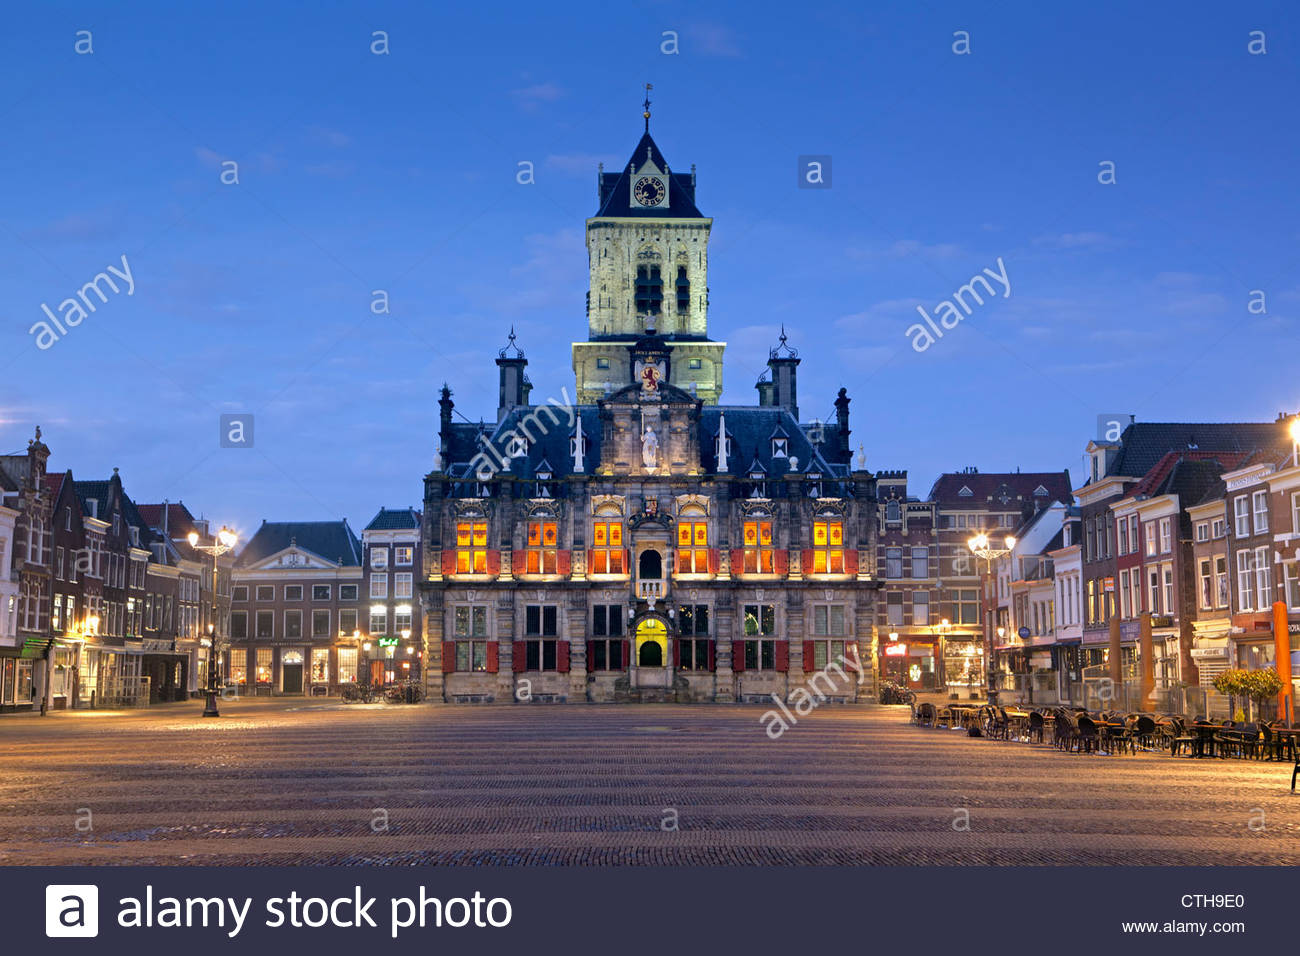 The Netherlands, Delft, Townhall. Dawn. - Stock Image